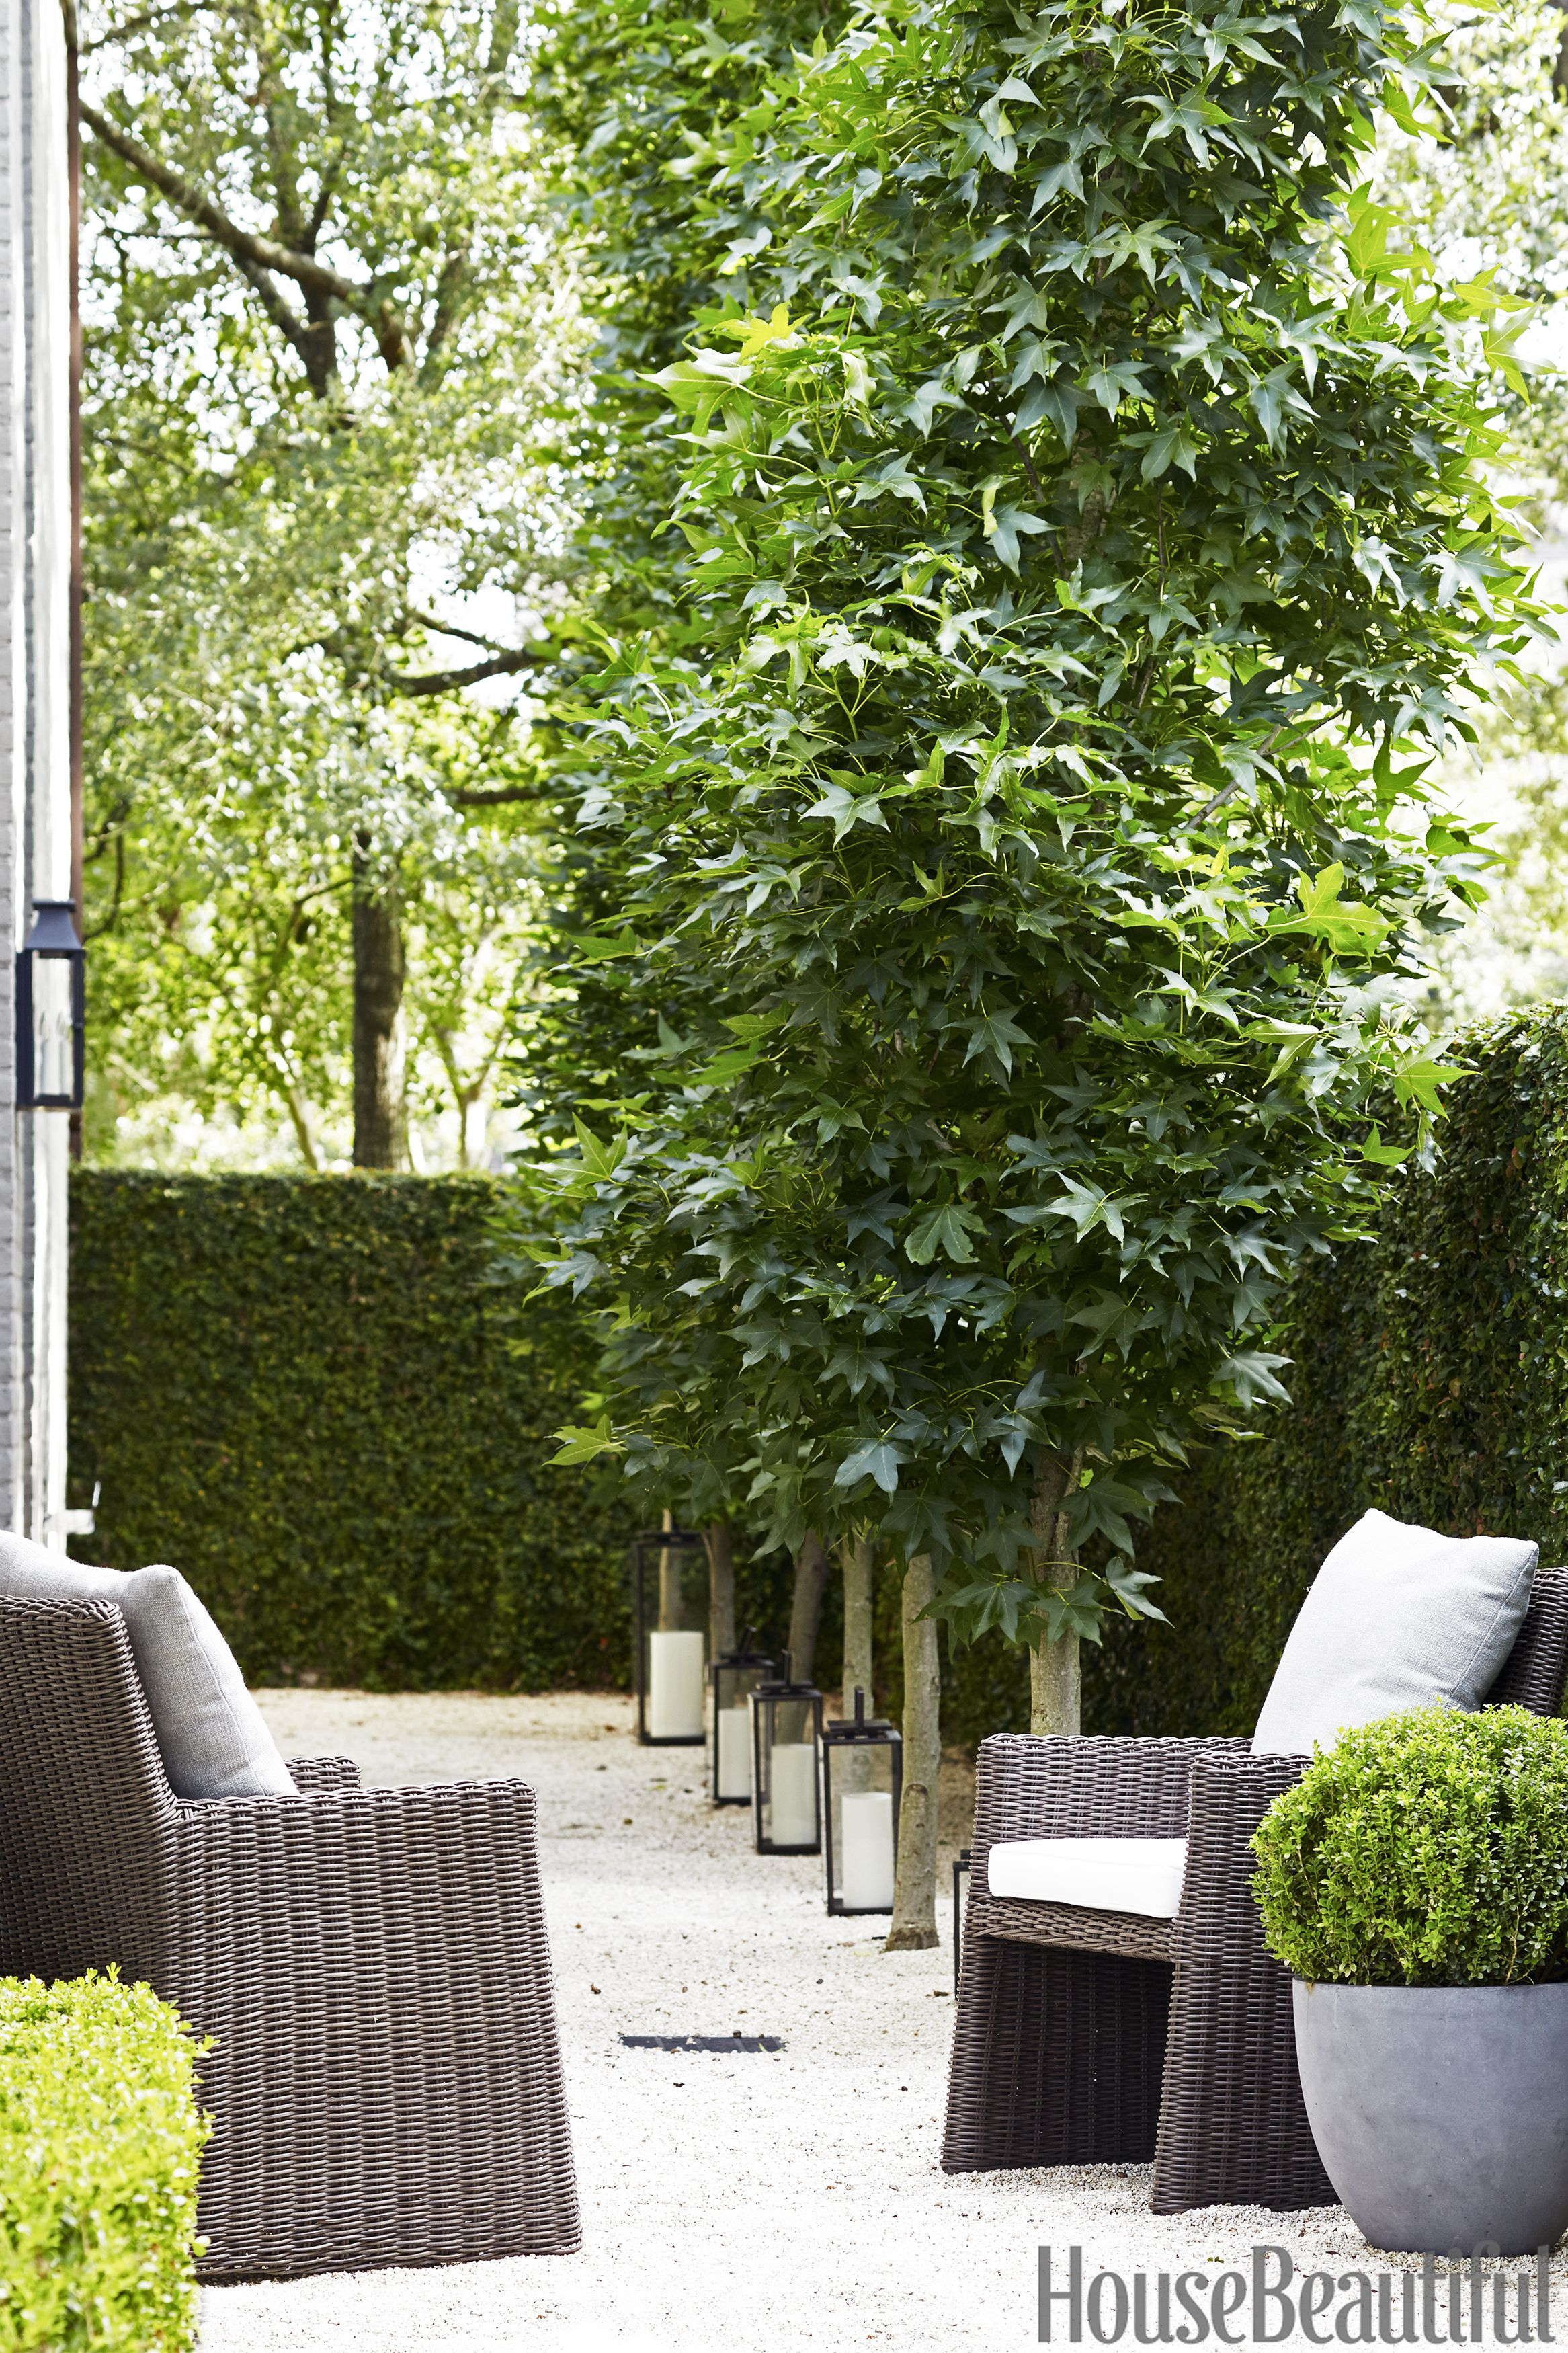 53 Beautiful Landscaping Ideas Best Backyard Landscape Design Tips with 12 Genius Concepts of How to Improve Pics Of Landscaped Backyards